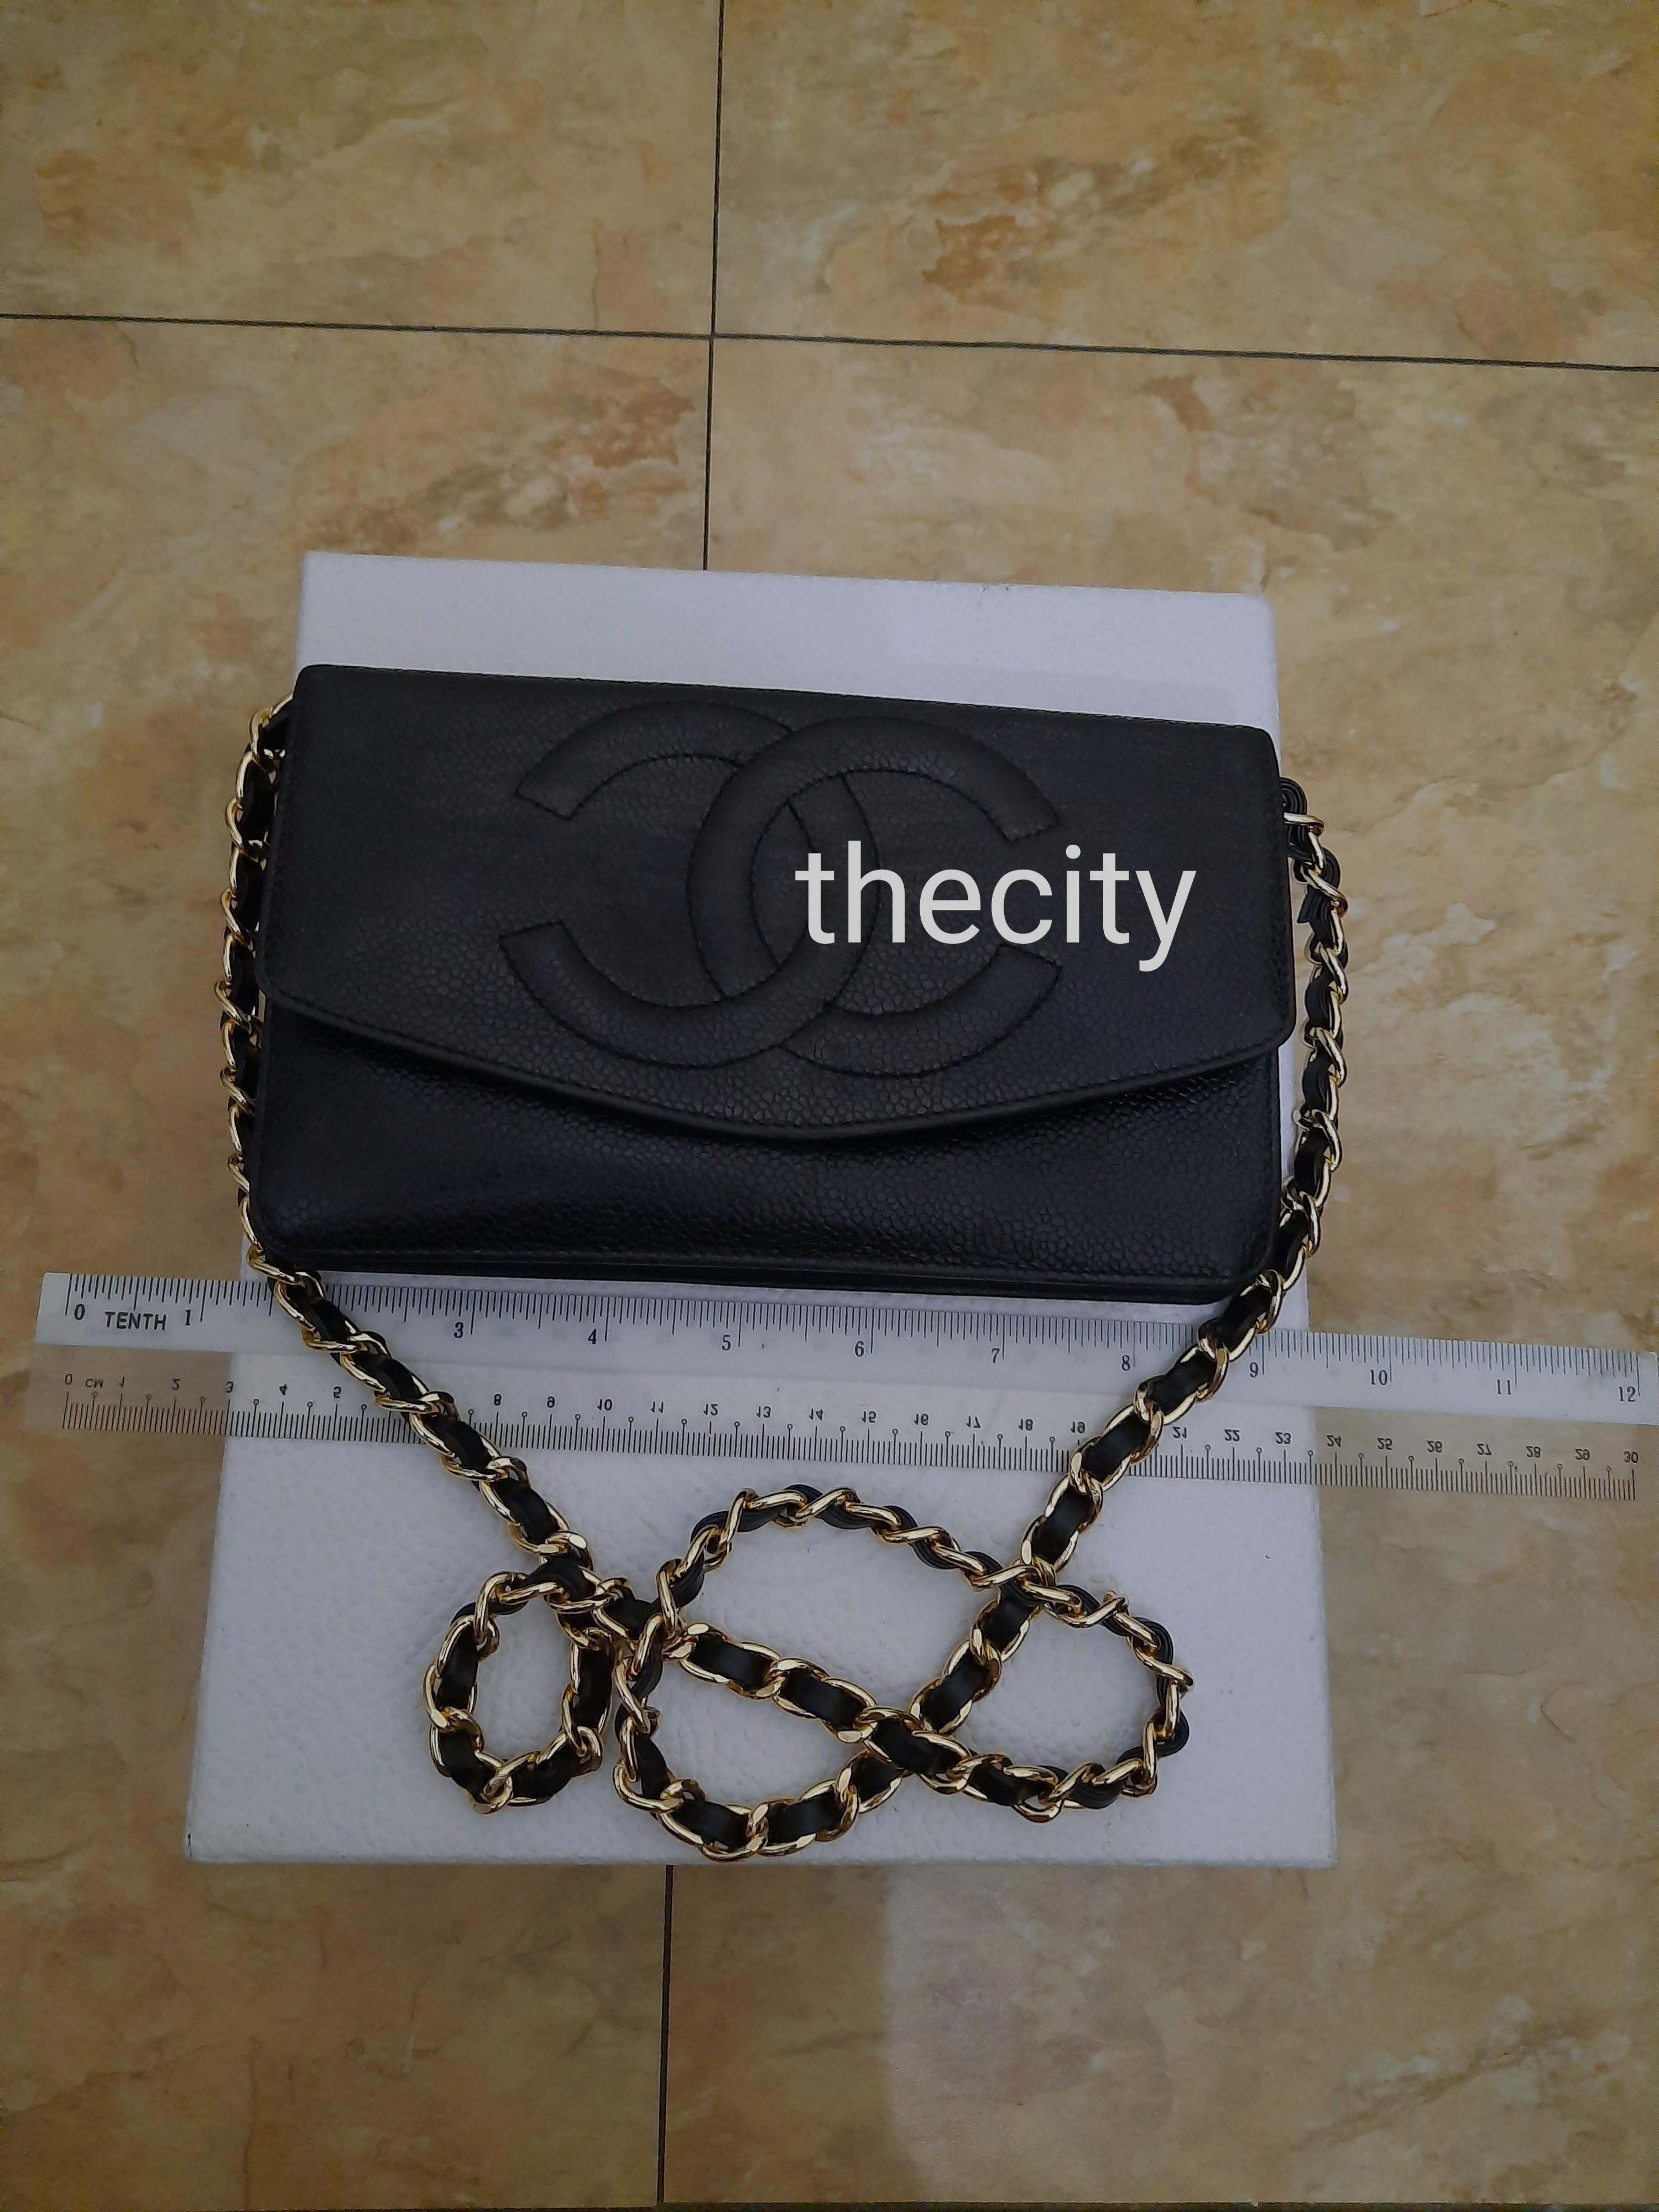 AUTHENTIC CHANEL XL ORGANIZER POUCH / WALLET - BLACK CAVIAR LEATHER- BIG CC LOGO DESIGN- GOLD HARDWARE- OVERALL GOOD, CLEAN INTERIOR - HOLOGRAM STICKER INTACT , DATE OF PURCHASE STICKER INTACT- CLASSIC TIMELESS VINTAGE DESIGN- COMES WITH EXTRA ADD STRAP